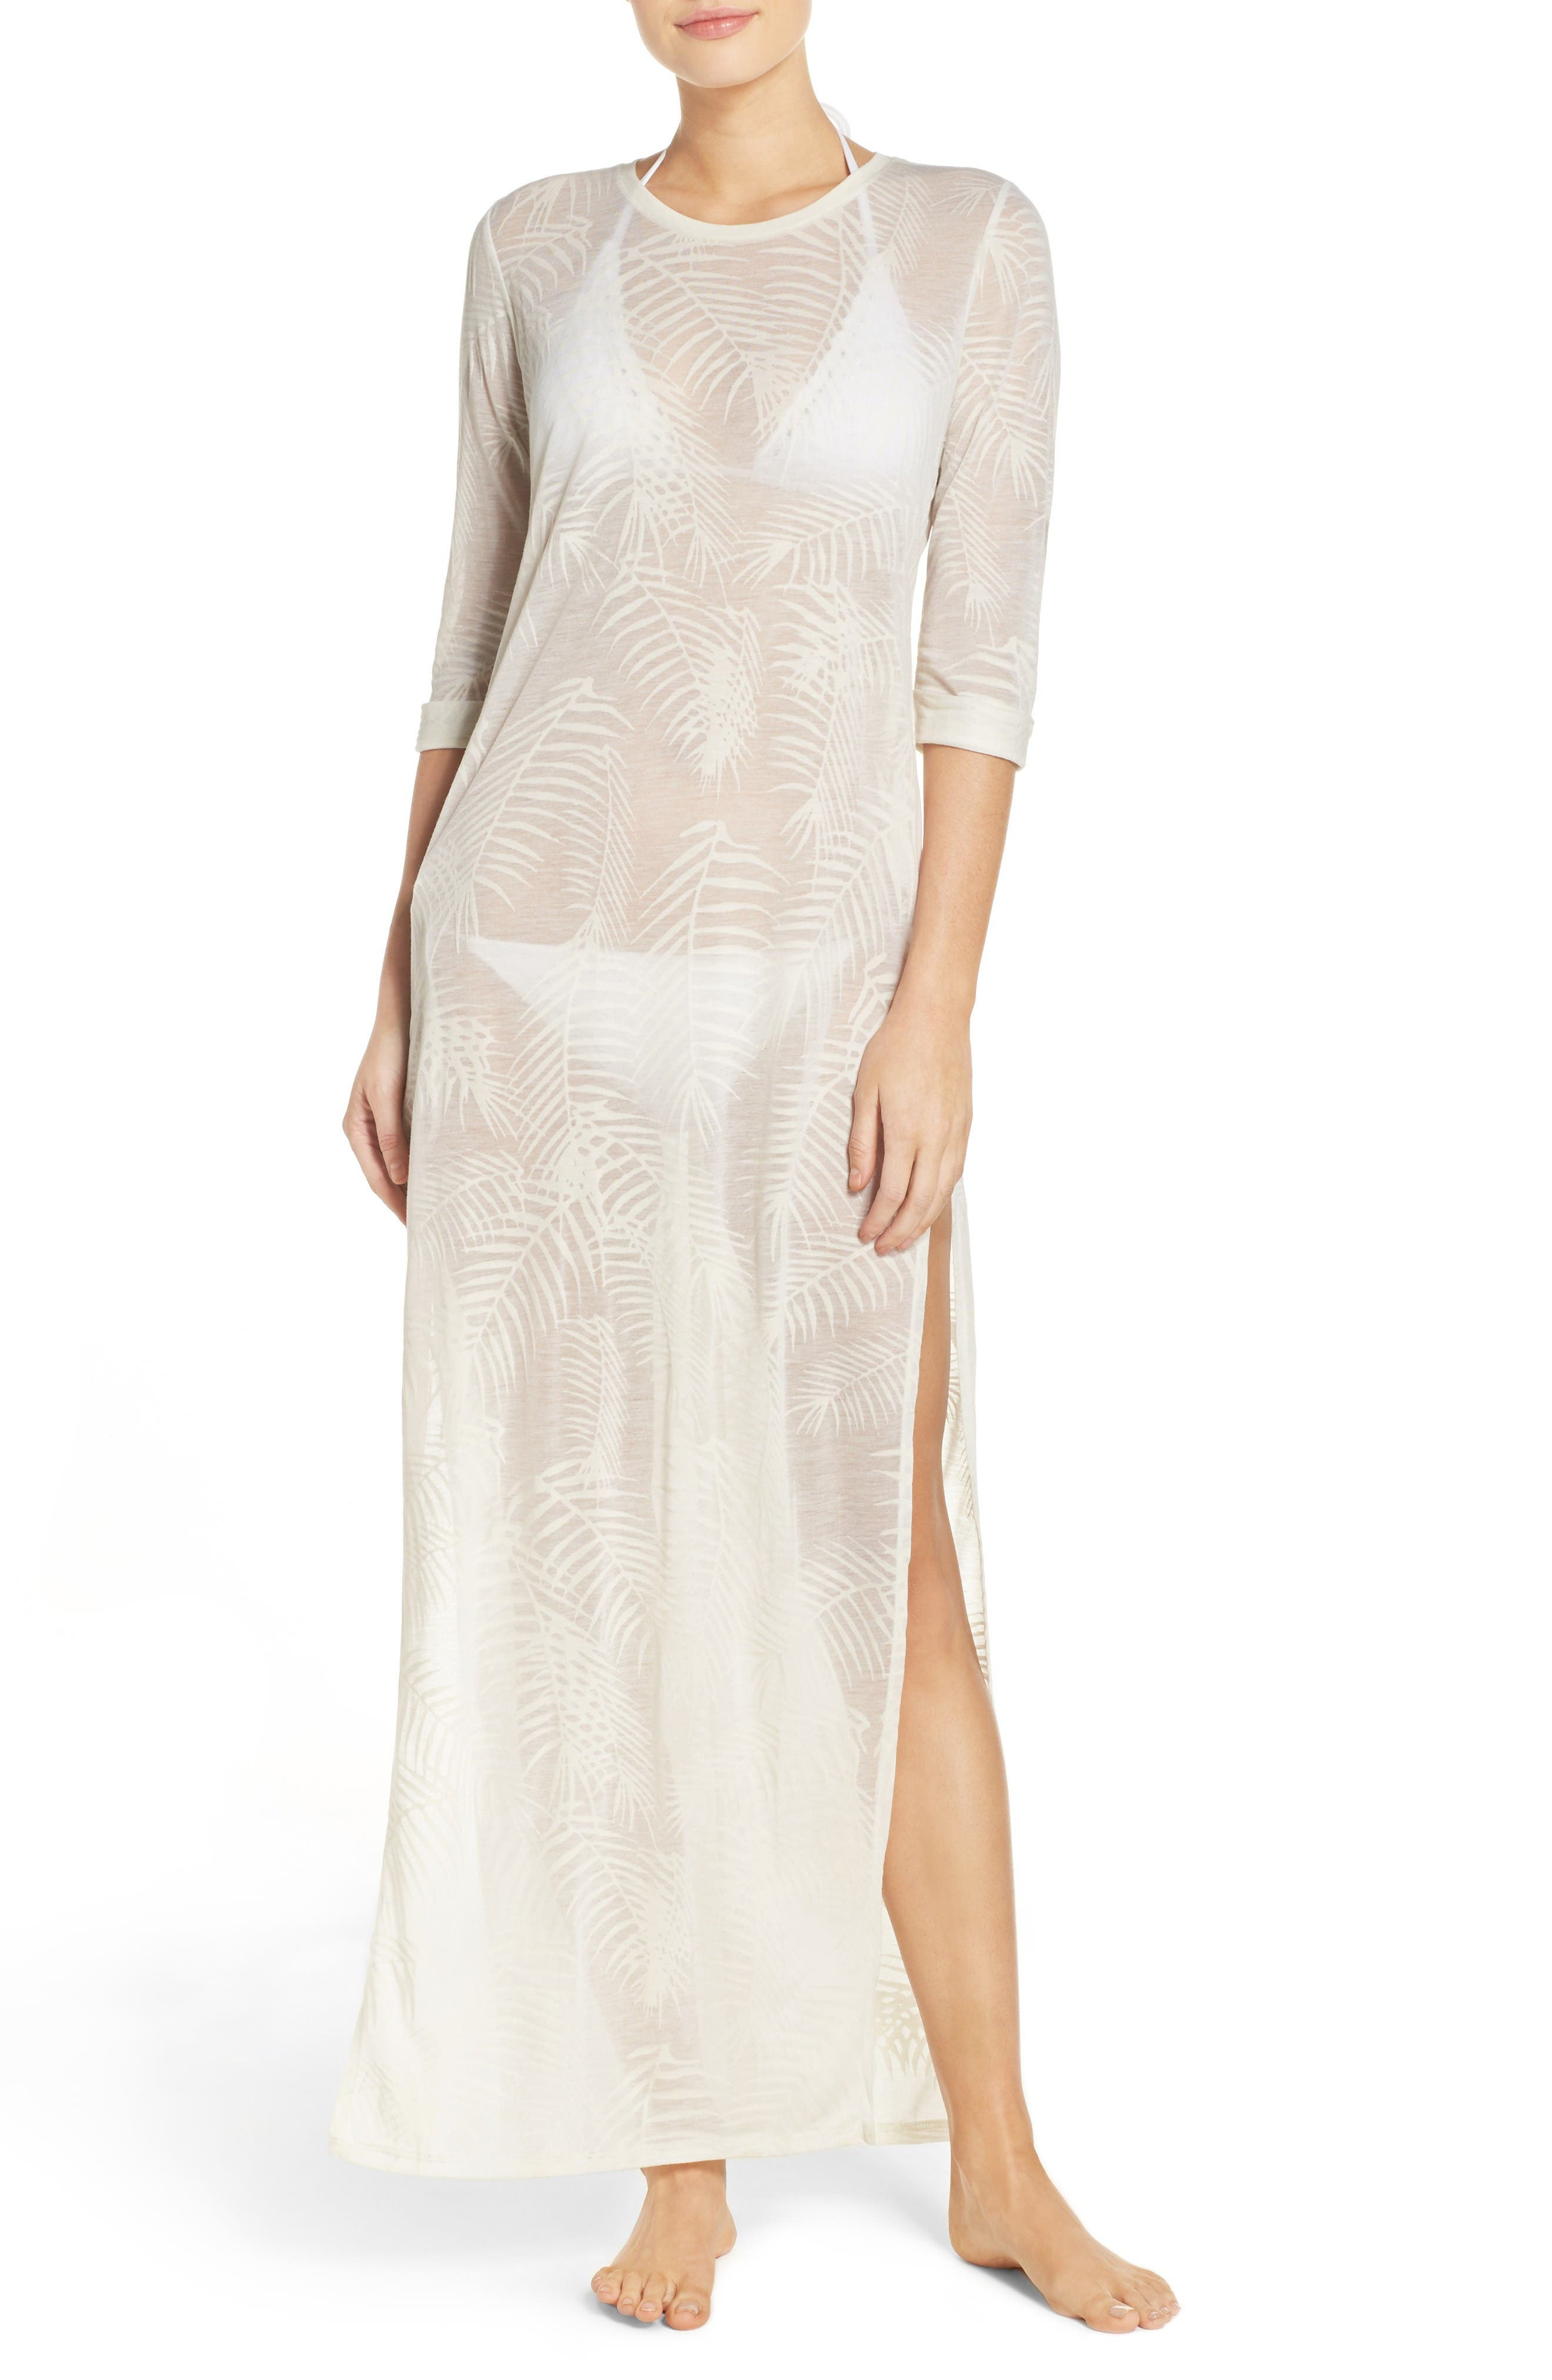 Finley Cover-Up Maxi Dress,                         Main,                         color, White